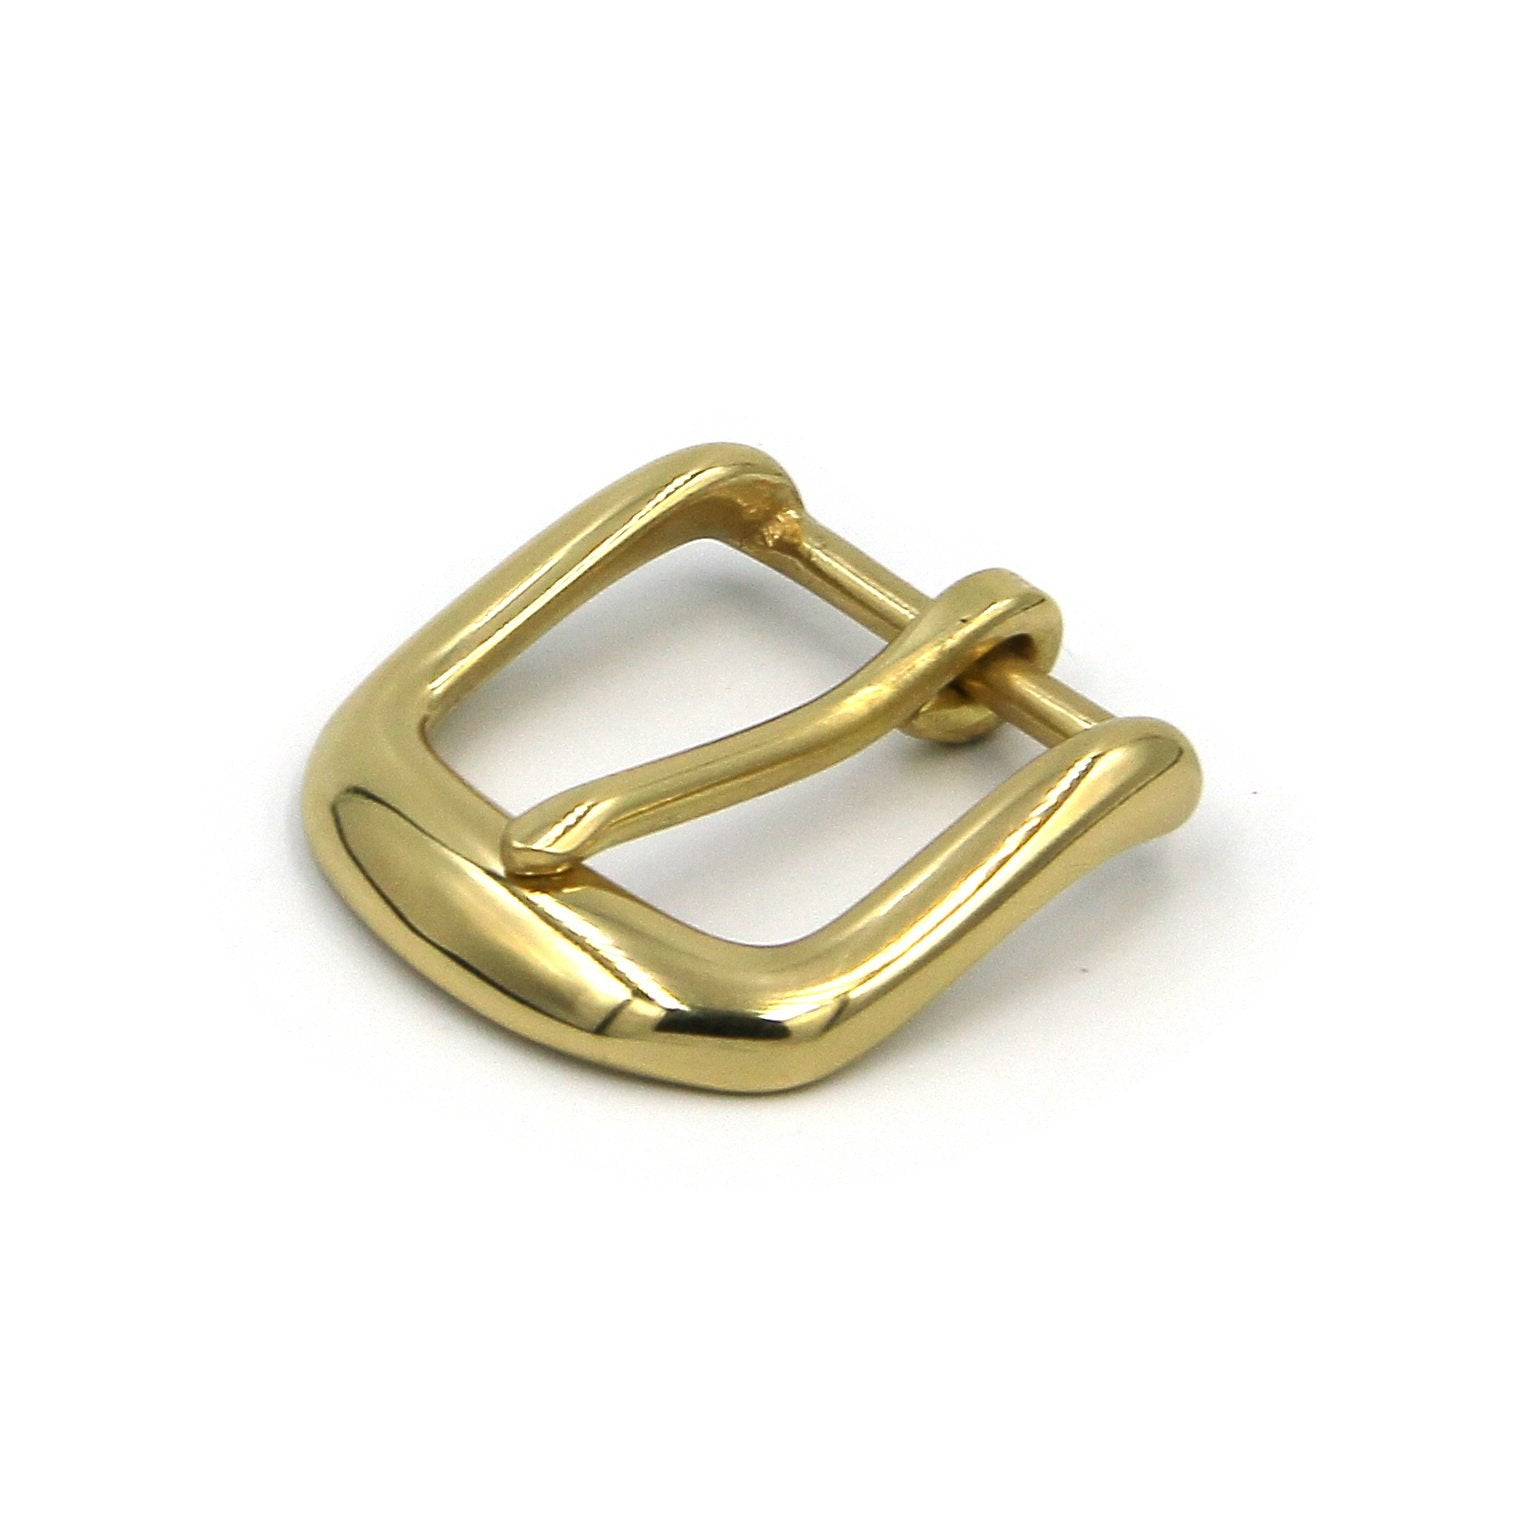 Glass Finish Brass Buckle Gold Color Women Fashion - Metal Field